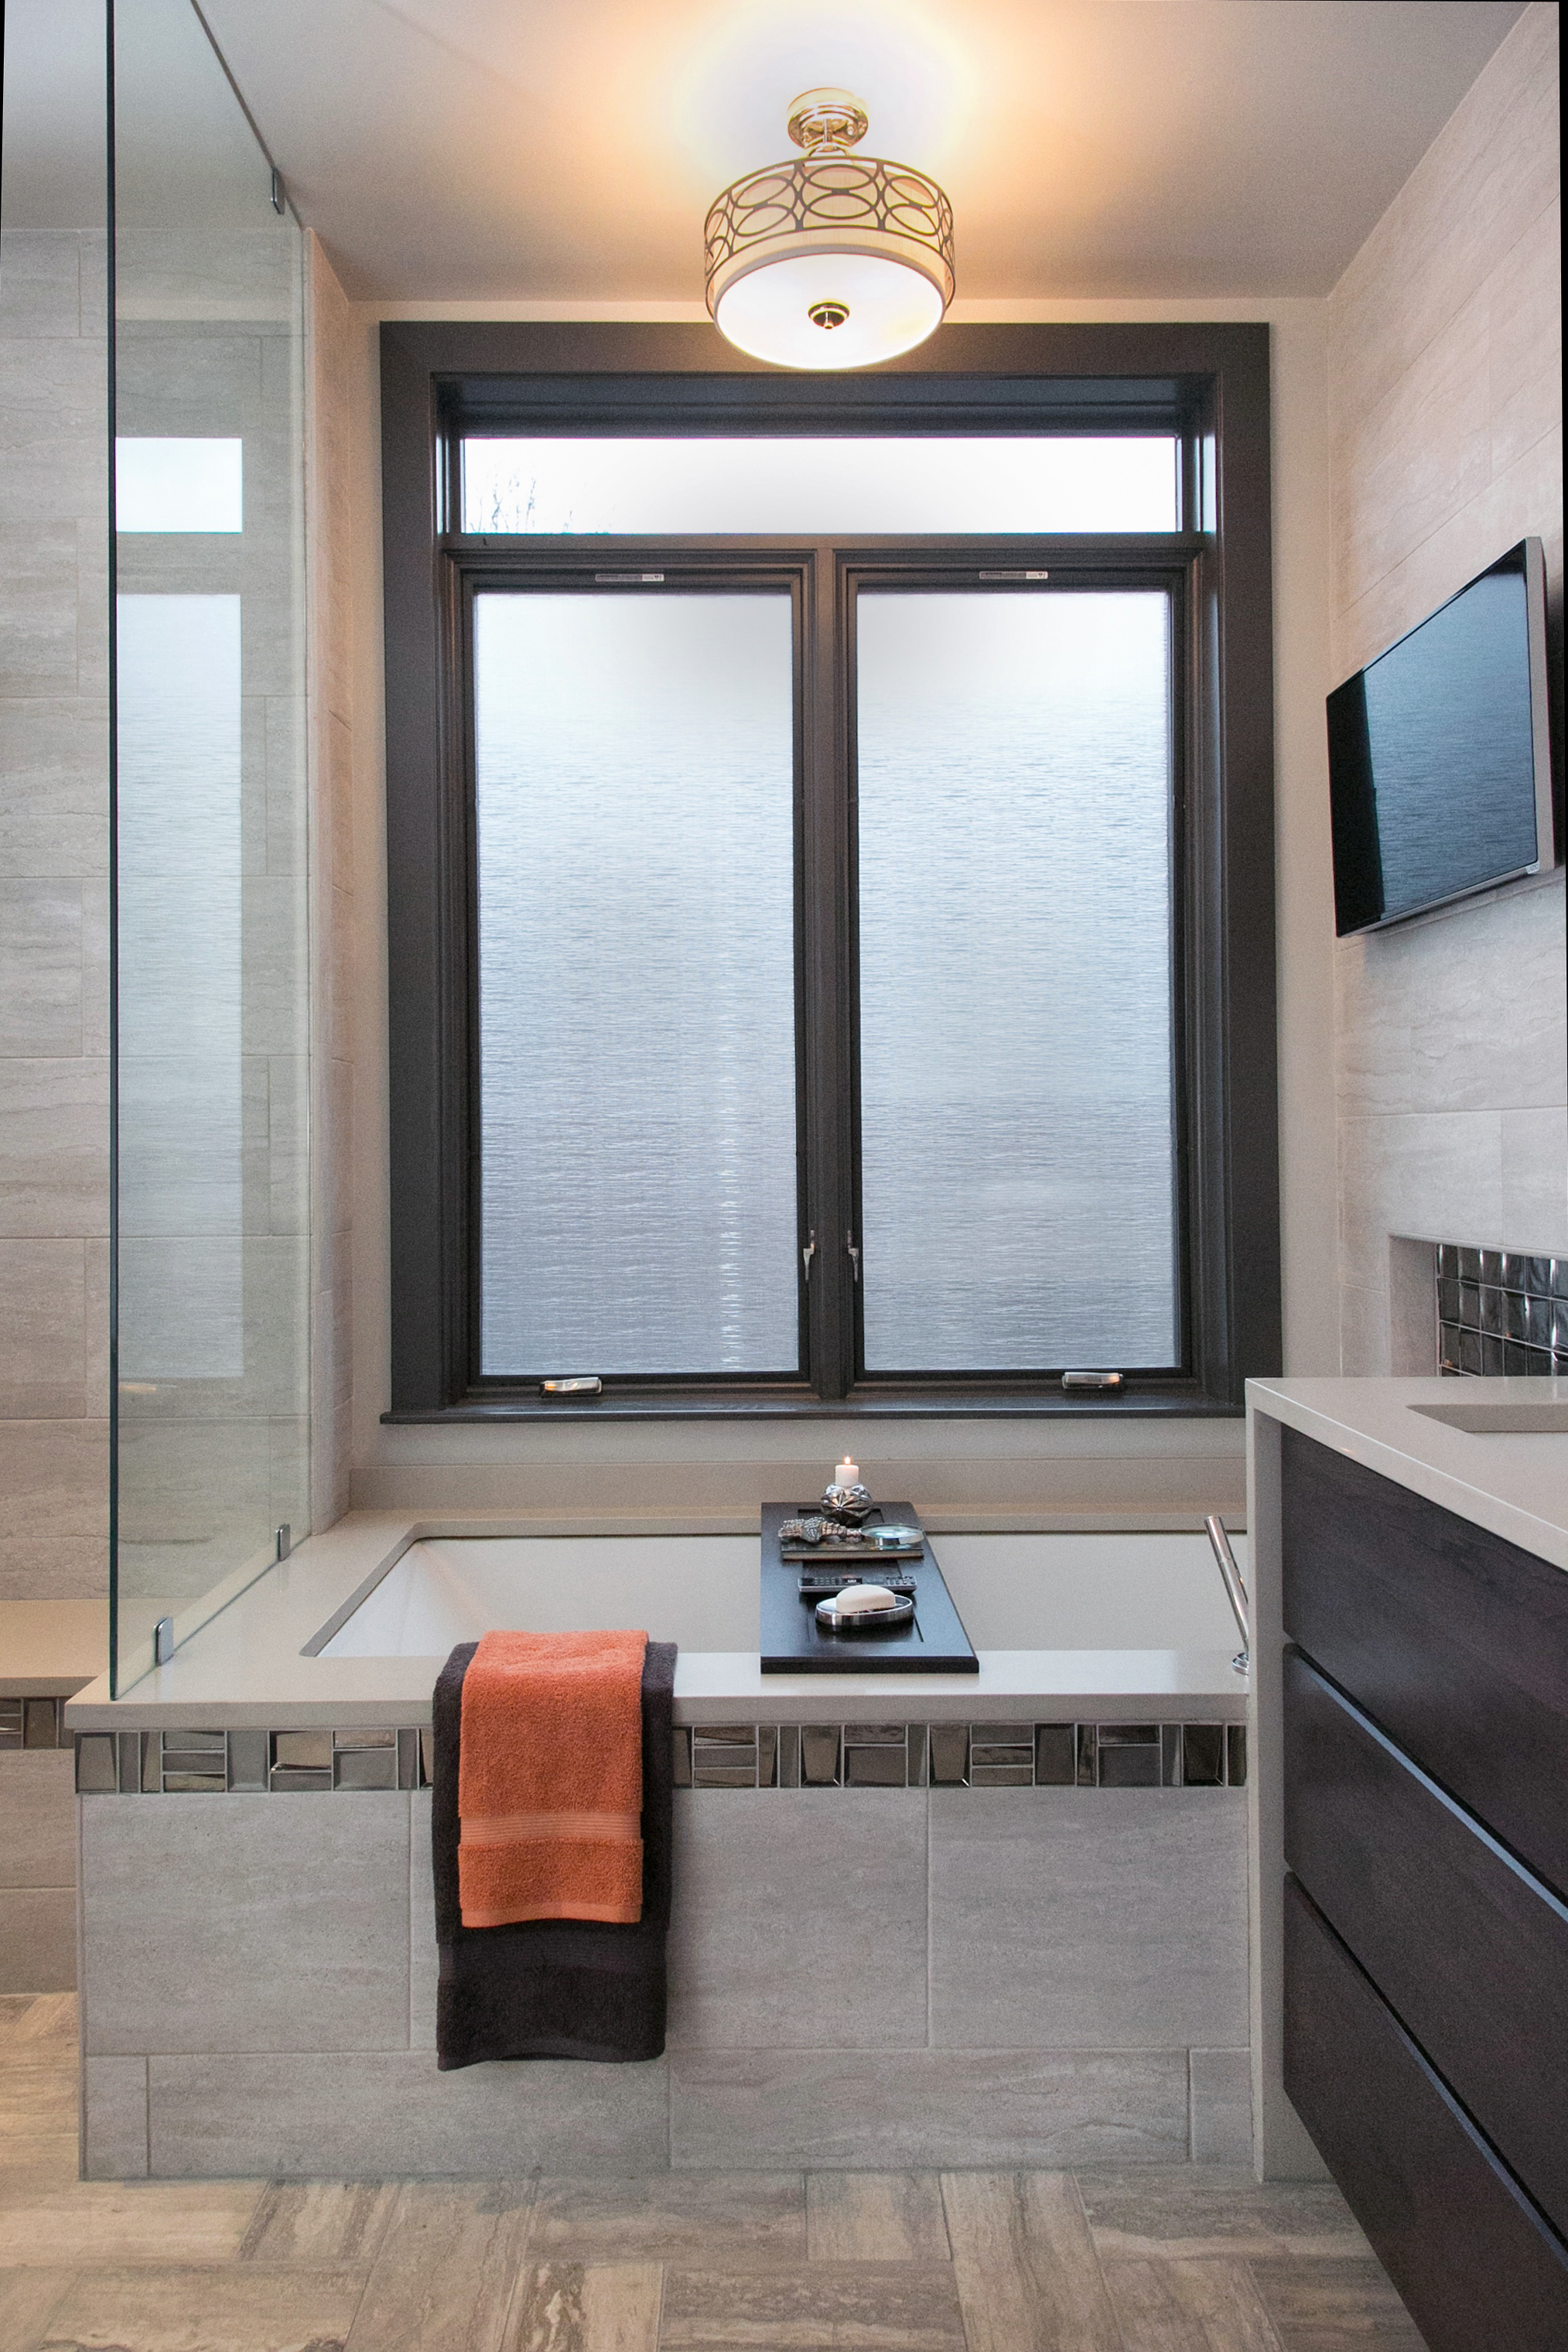 Chestnut Hill Master Bathroom:   140 Sq.ft Renovation - House Built 1938 - Contemporary Style